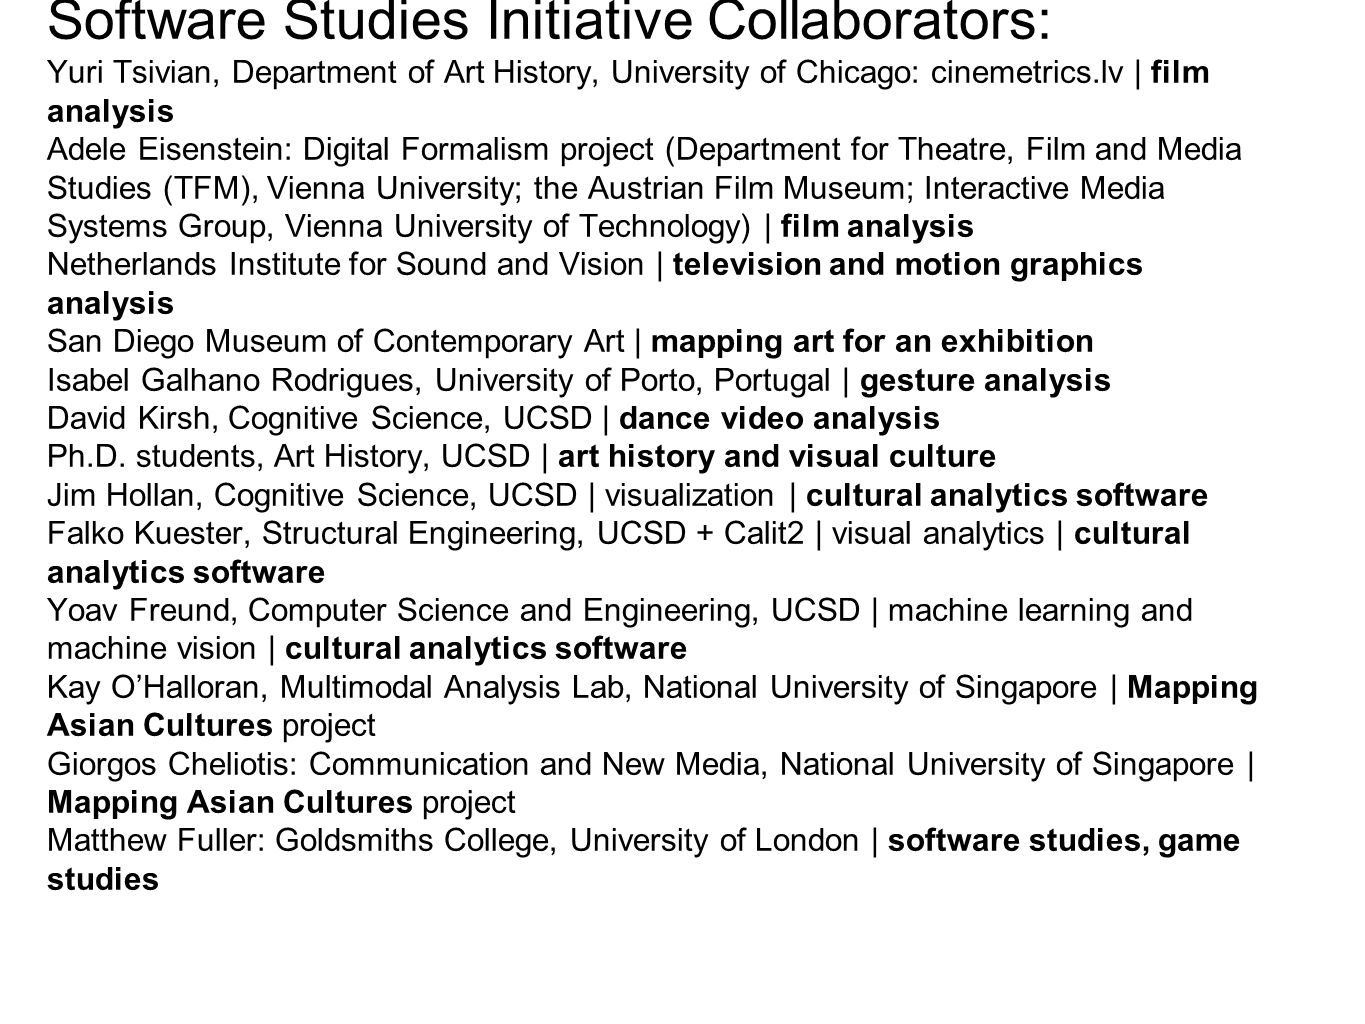 cultural analytics = quantitative analysis and visualization of cultural data